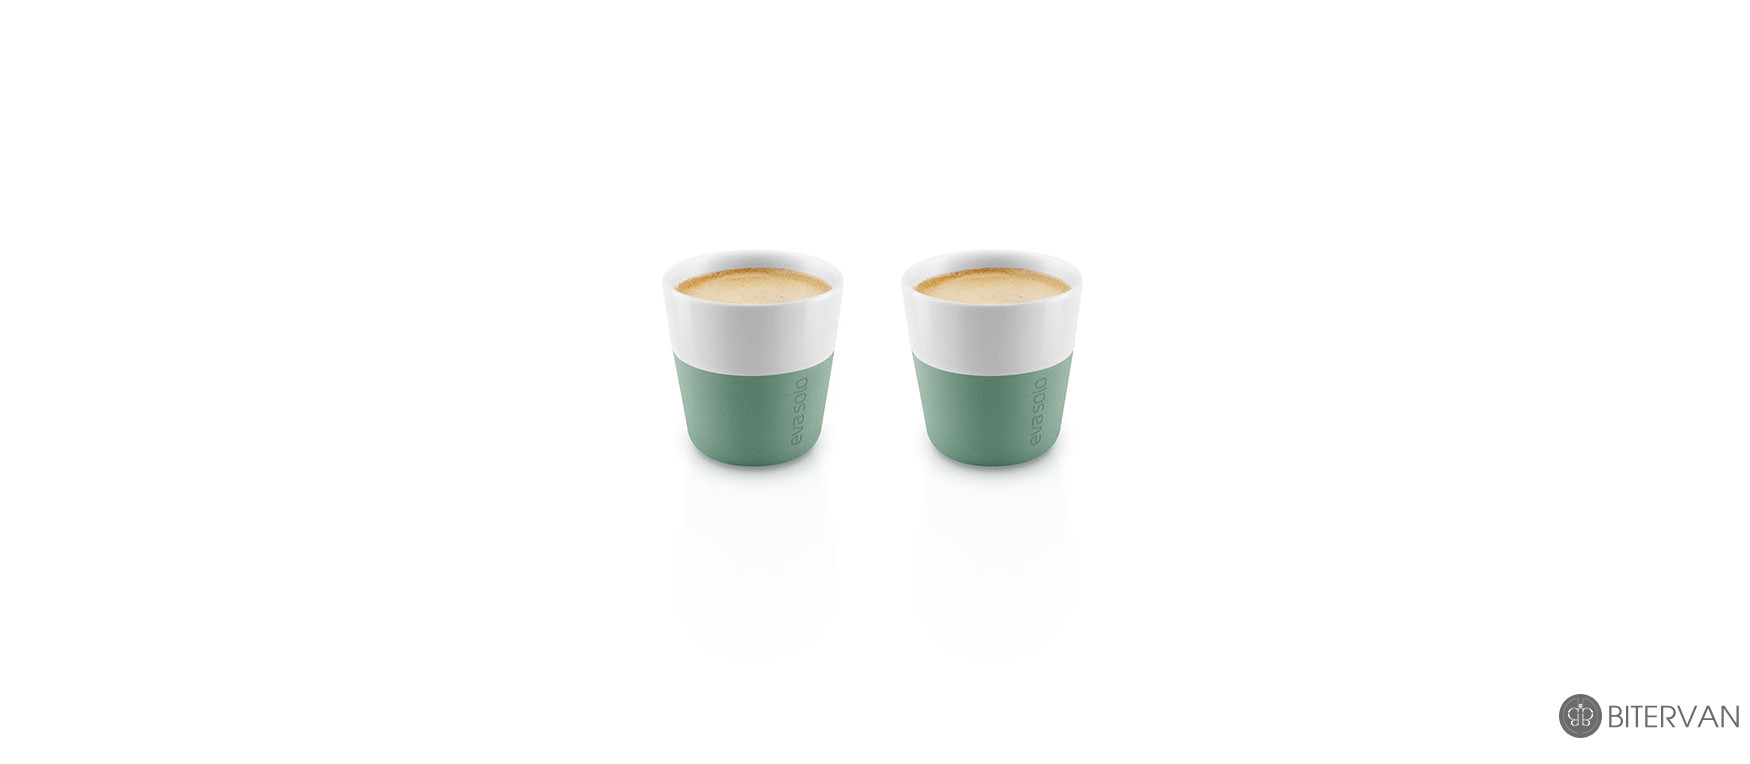 eva solo, espresso tumbler, 2 pcs, granite green, 80 ml